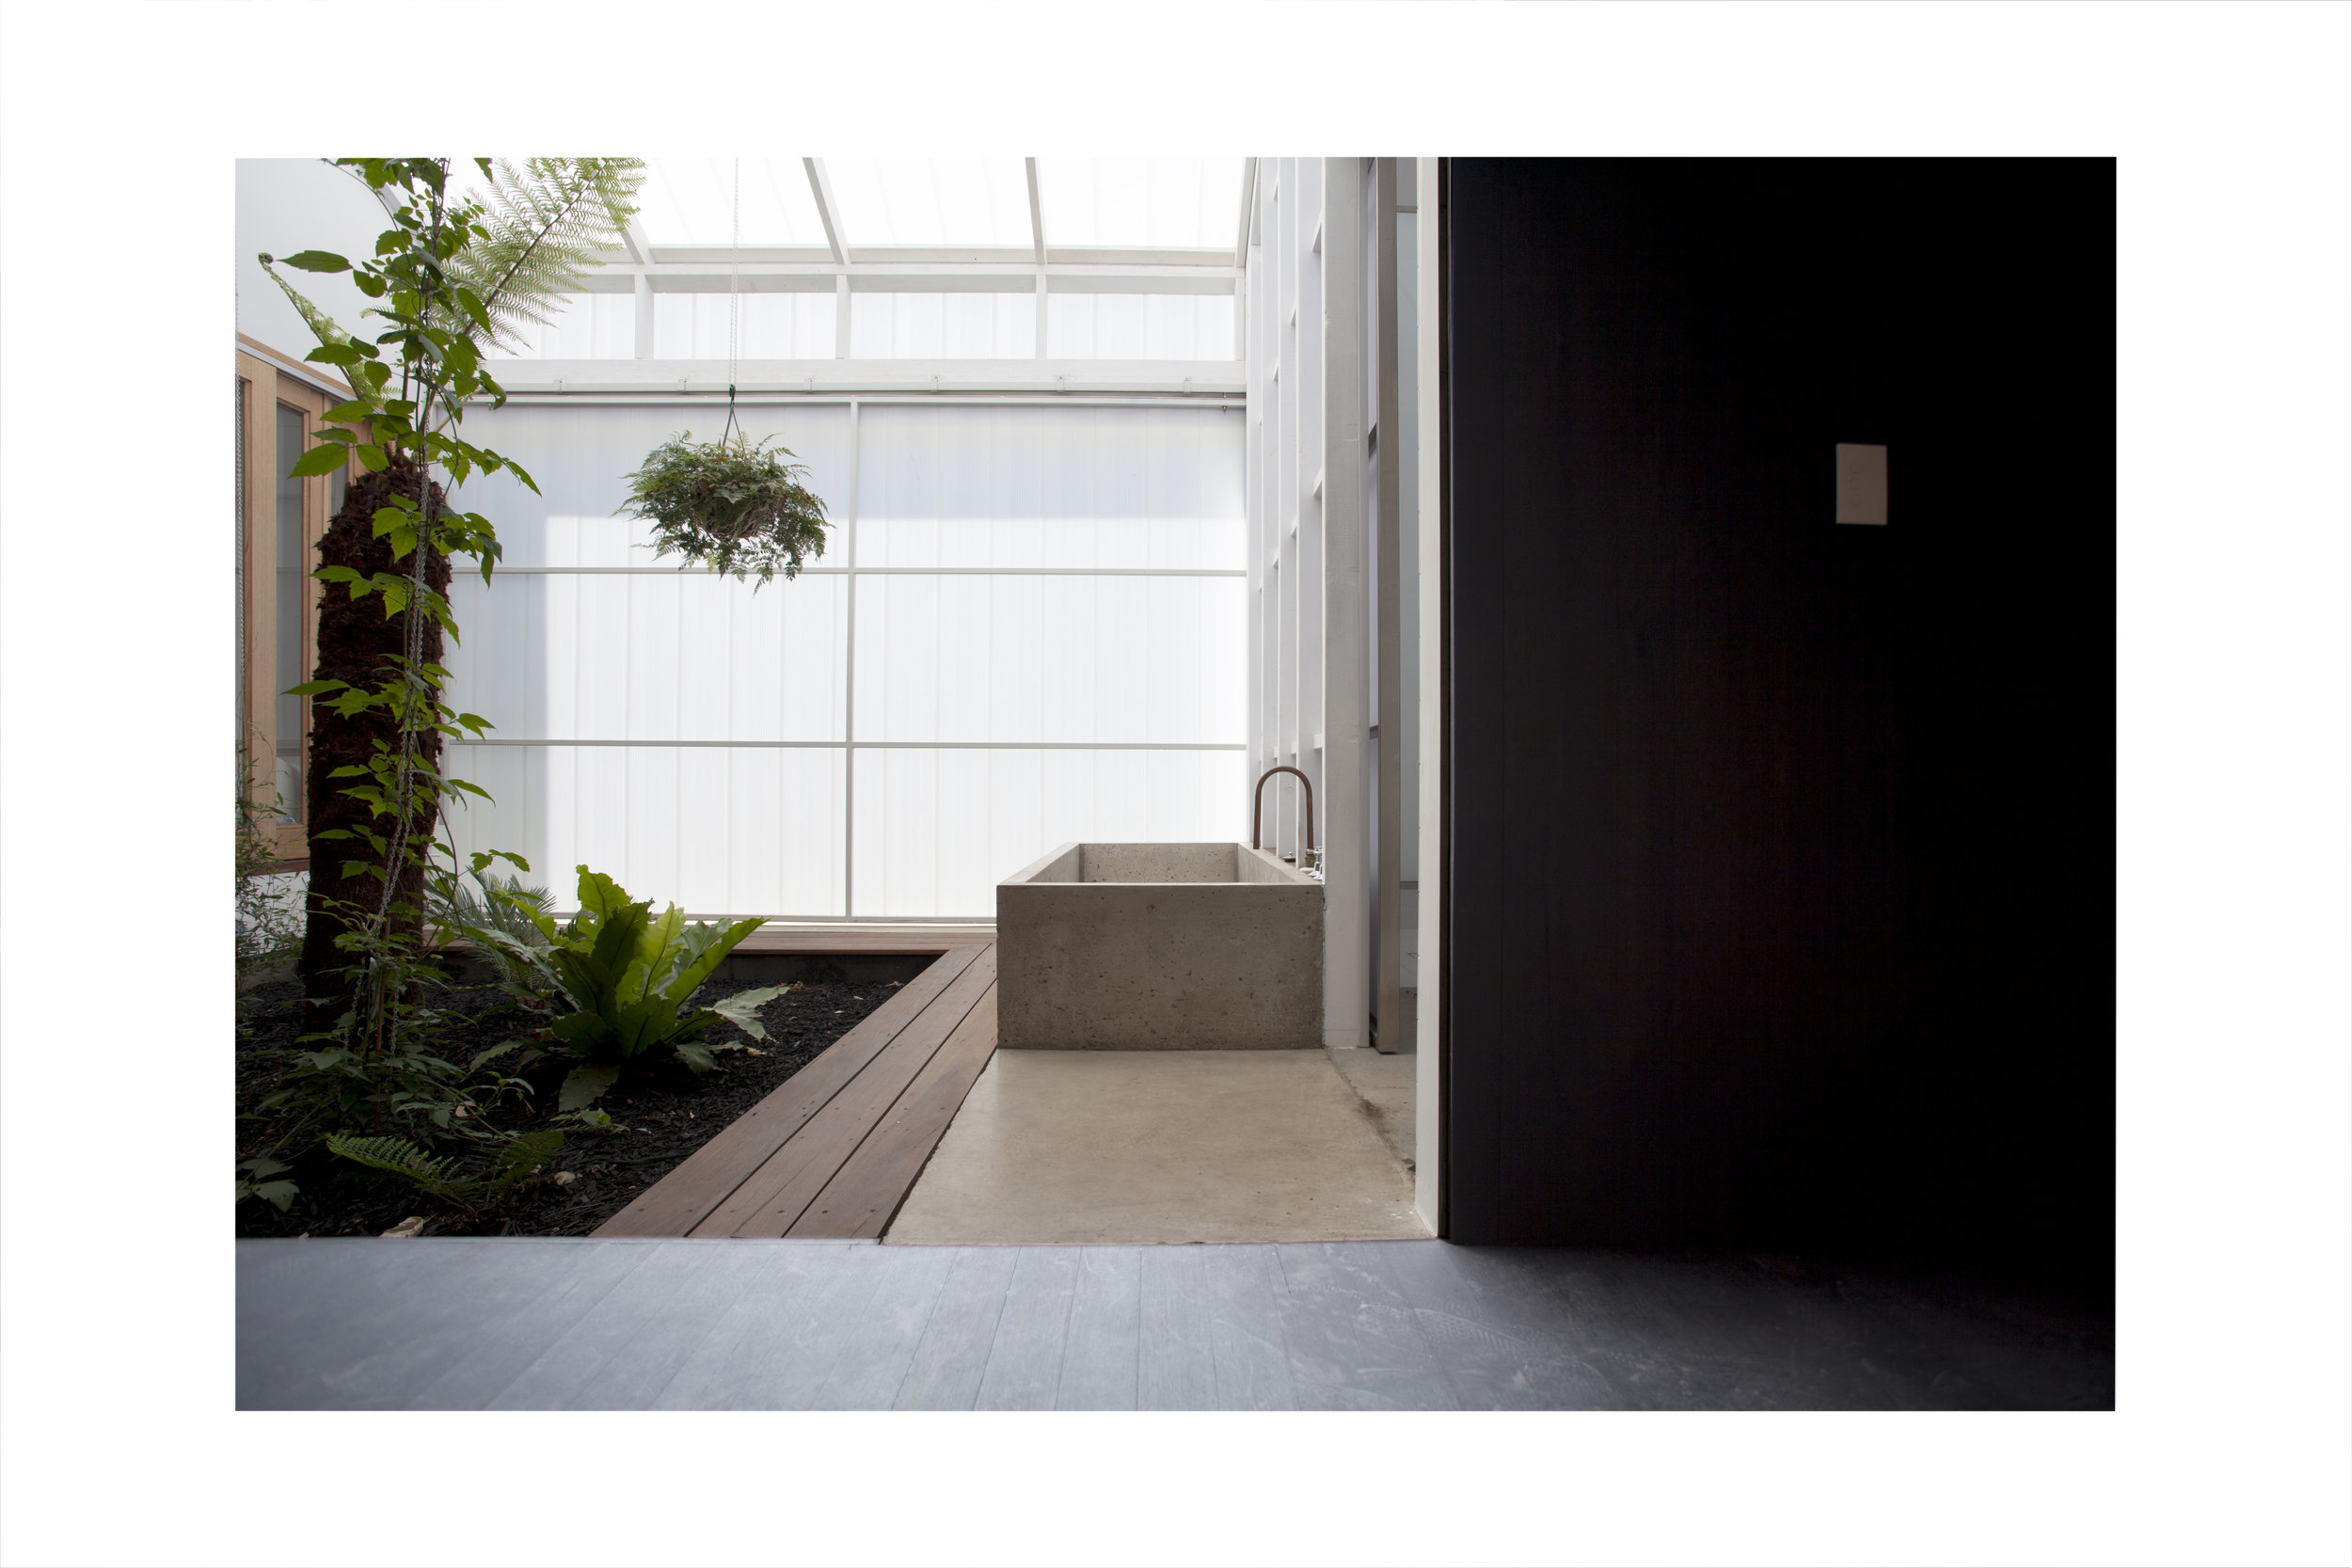 Hand build and designed Internal/External Concrete bath. Enough said.